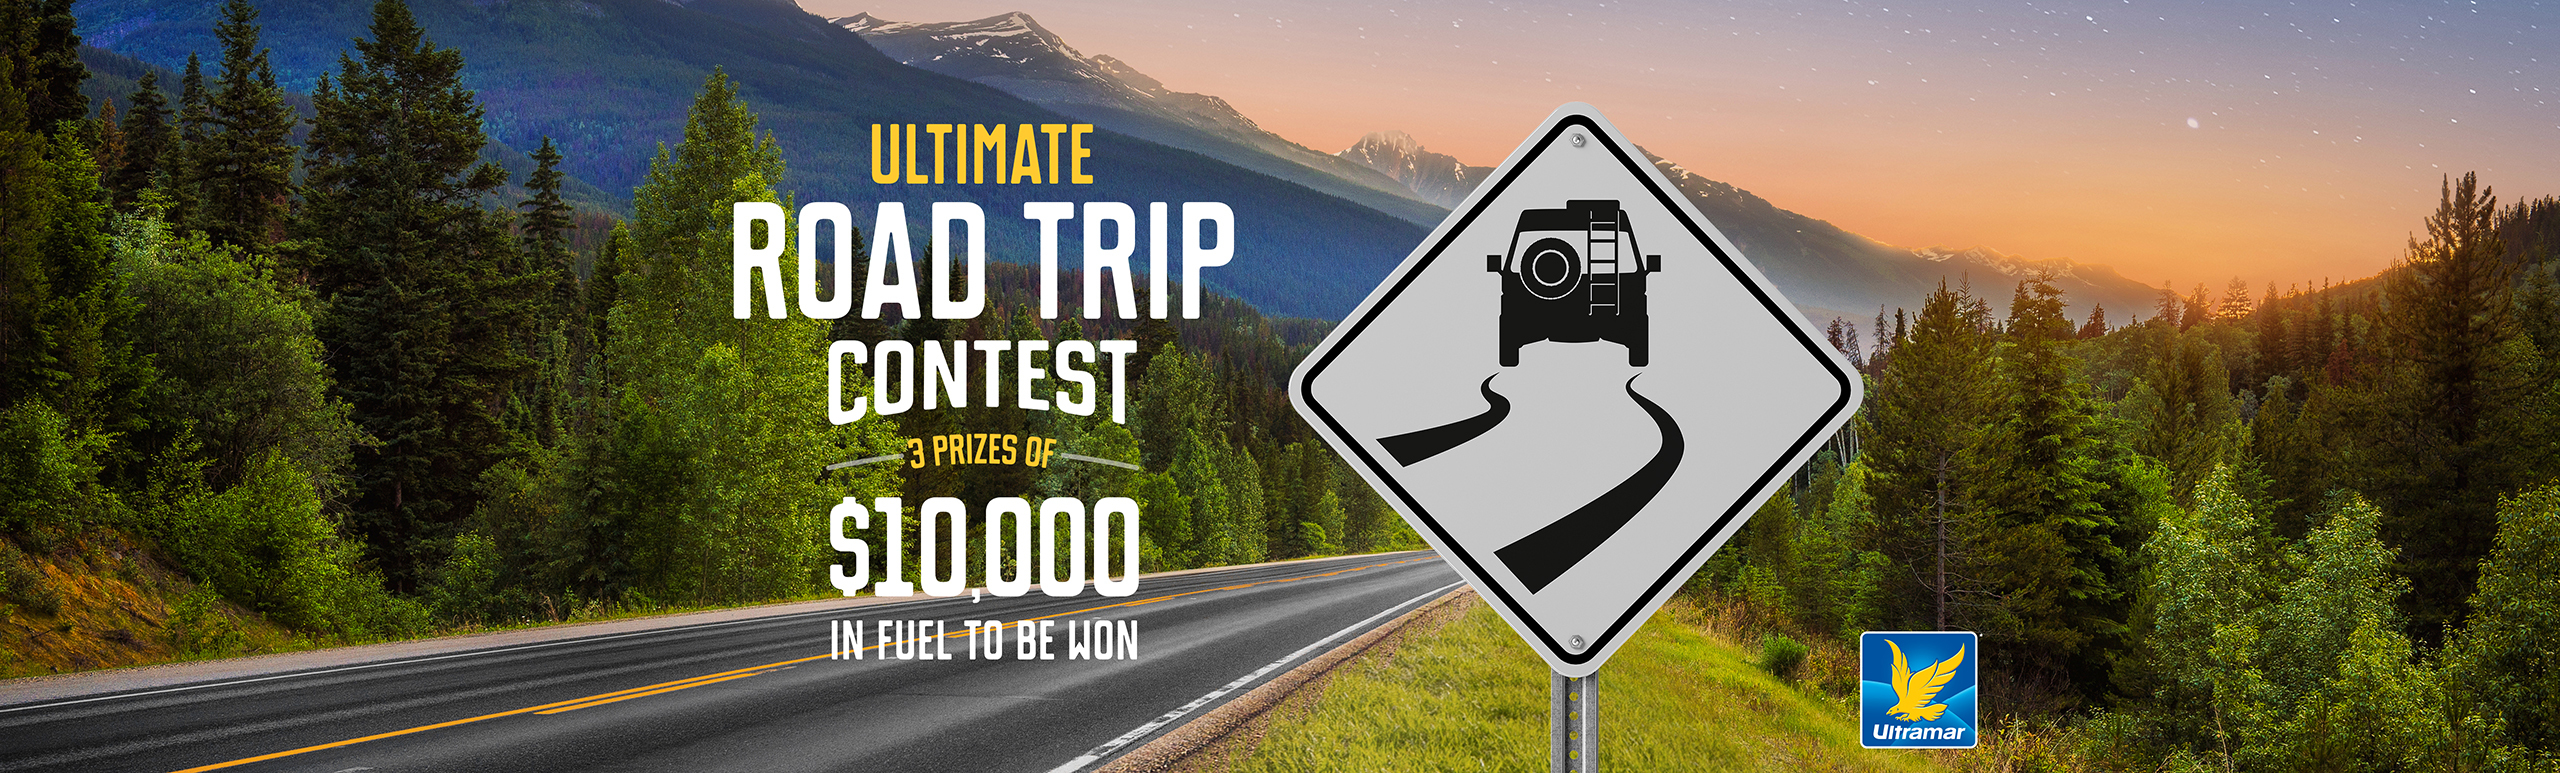 Gas Road Trip Ultramar Ultimate Road Trip Contest Get A Chance To Win